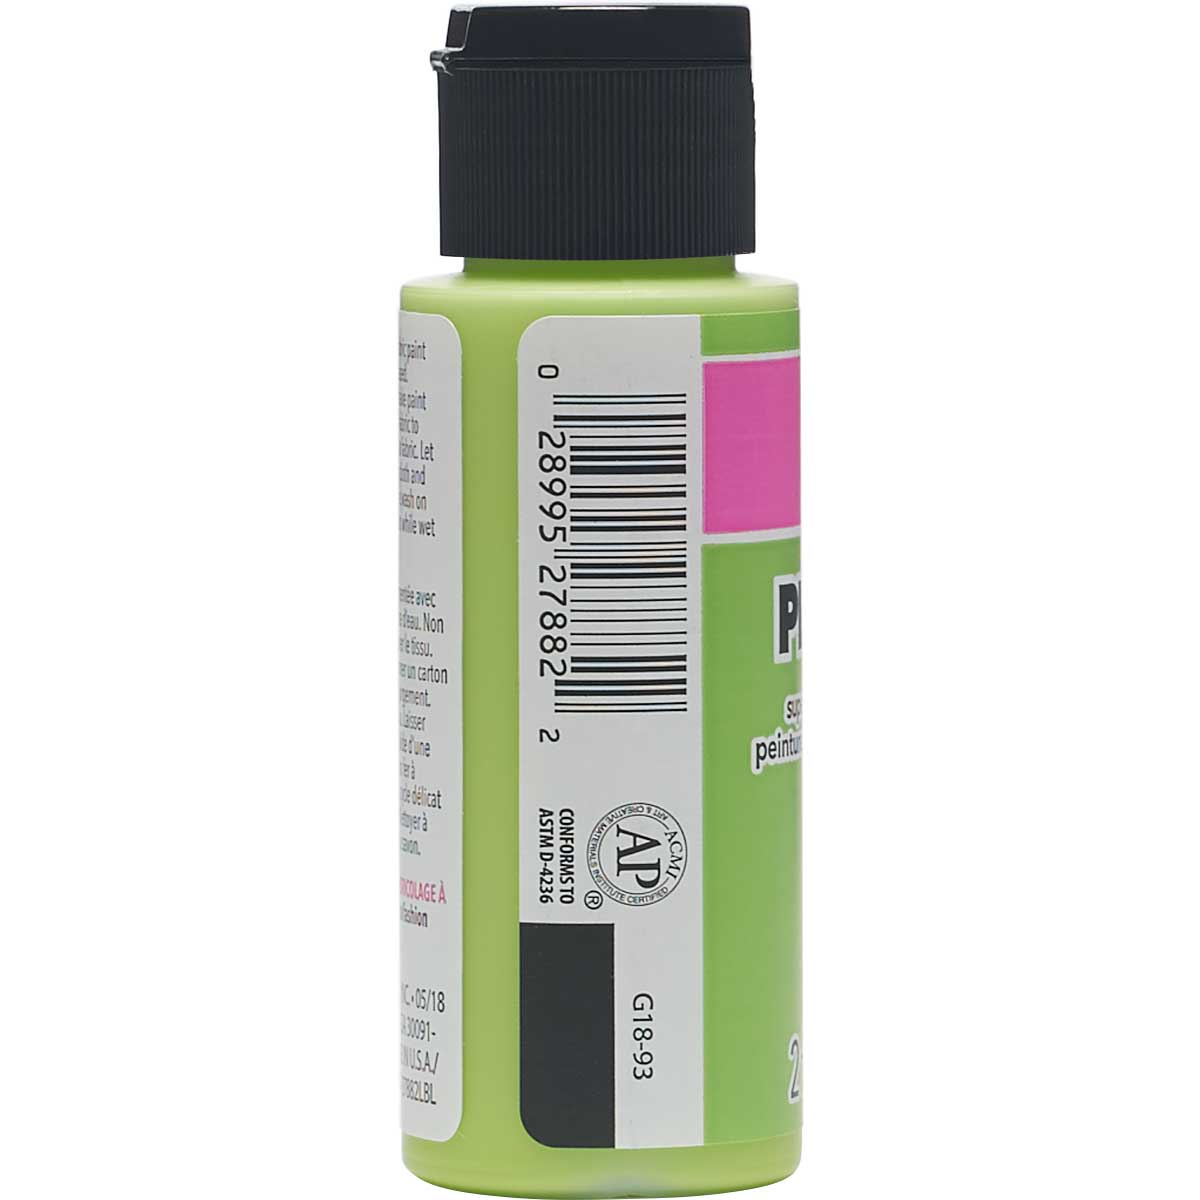 LaurDIY ® Perfect Fabric Paint - Kiwi, 2 oz.